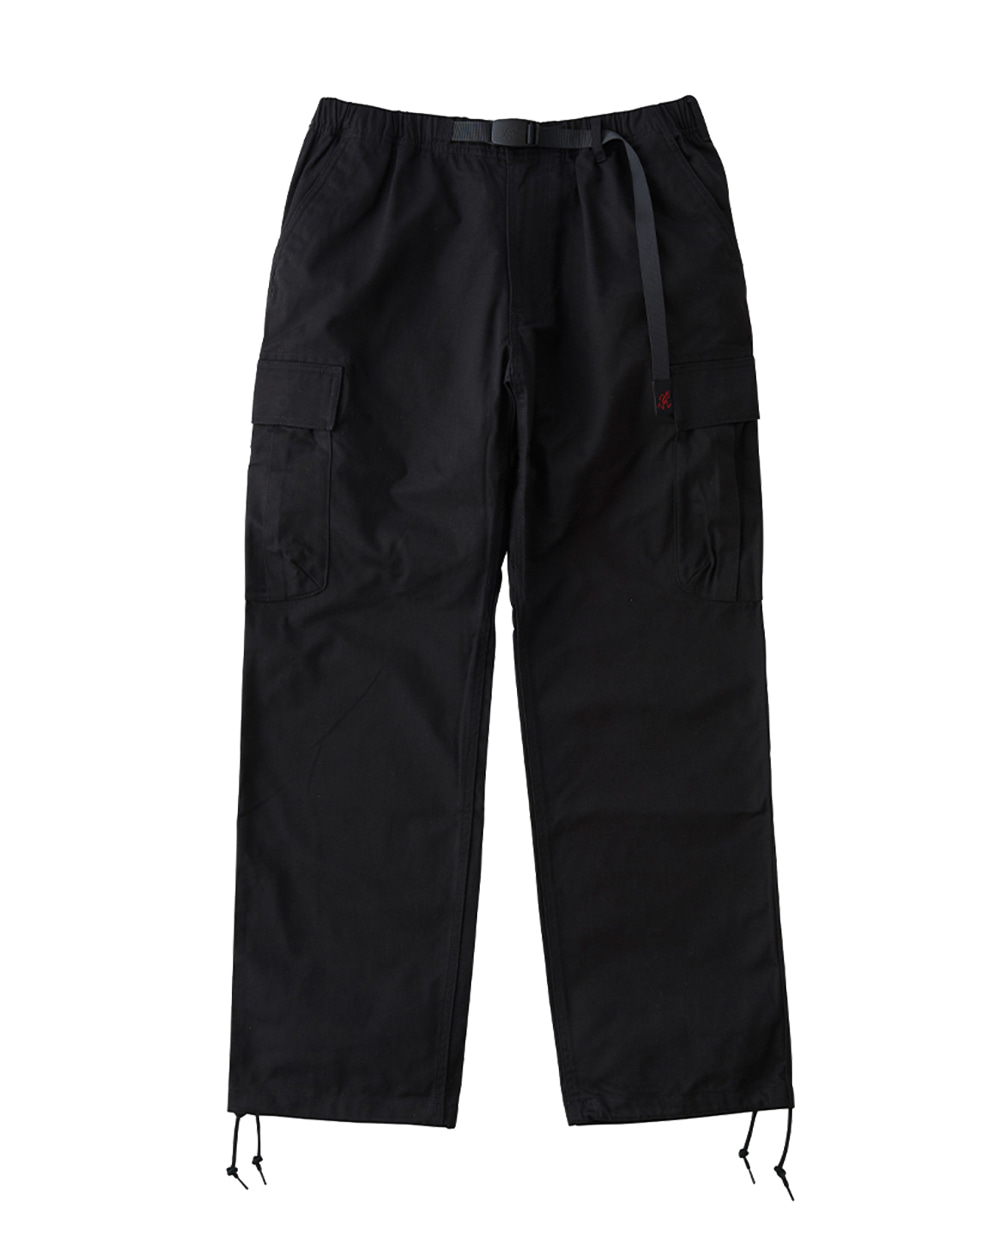 그라미치 BACK SATIN CARGO PANTS (Black)